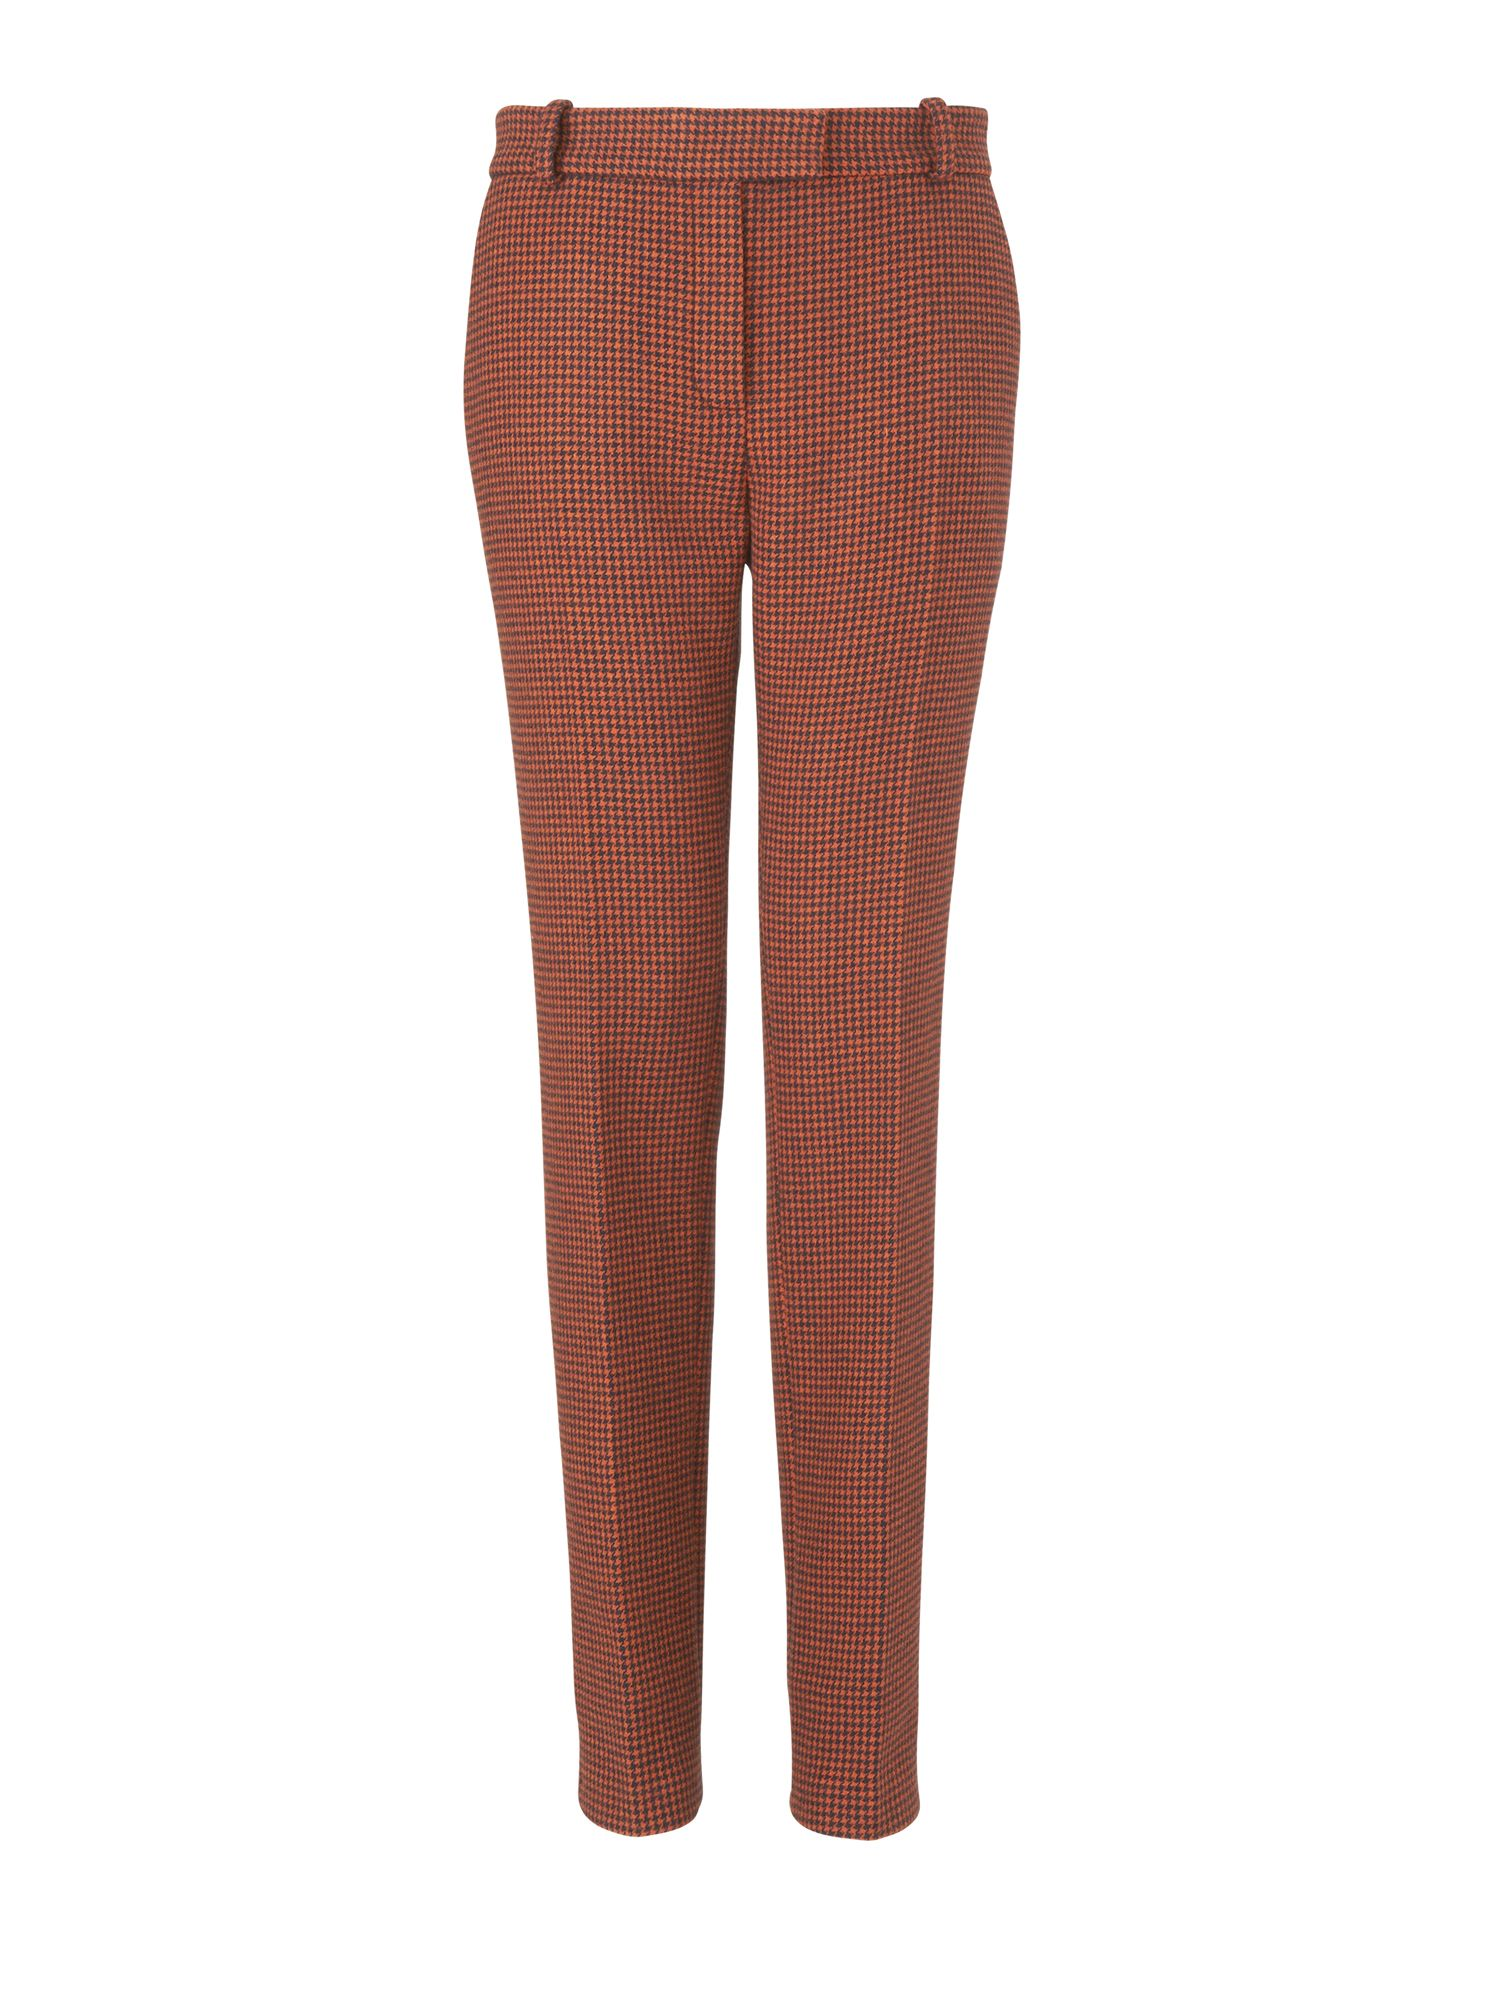 Moira wool trouser